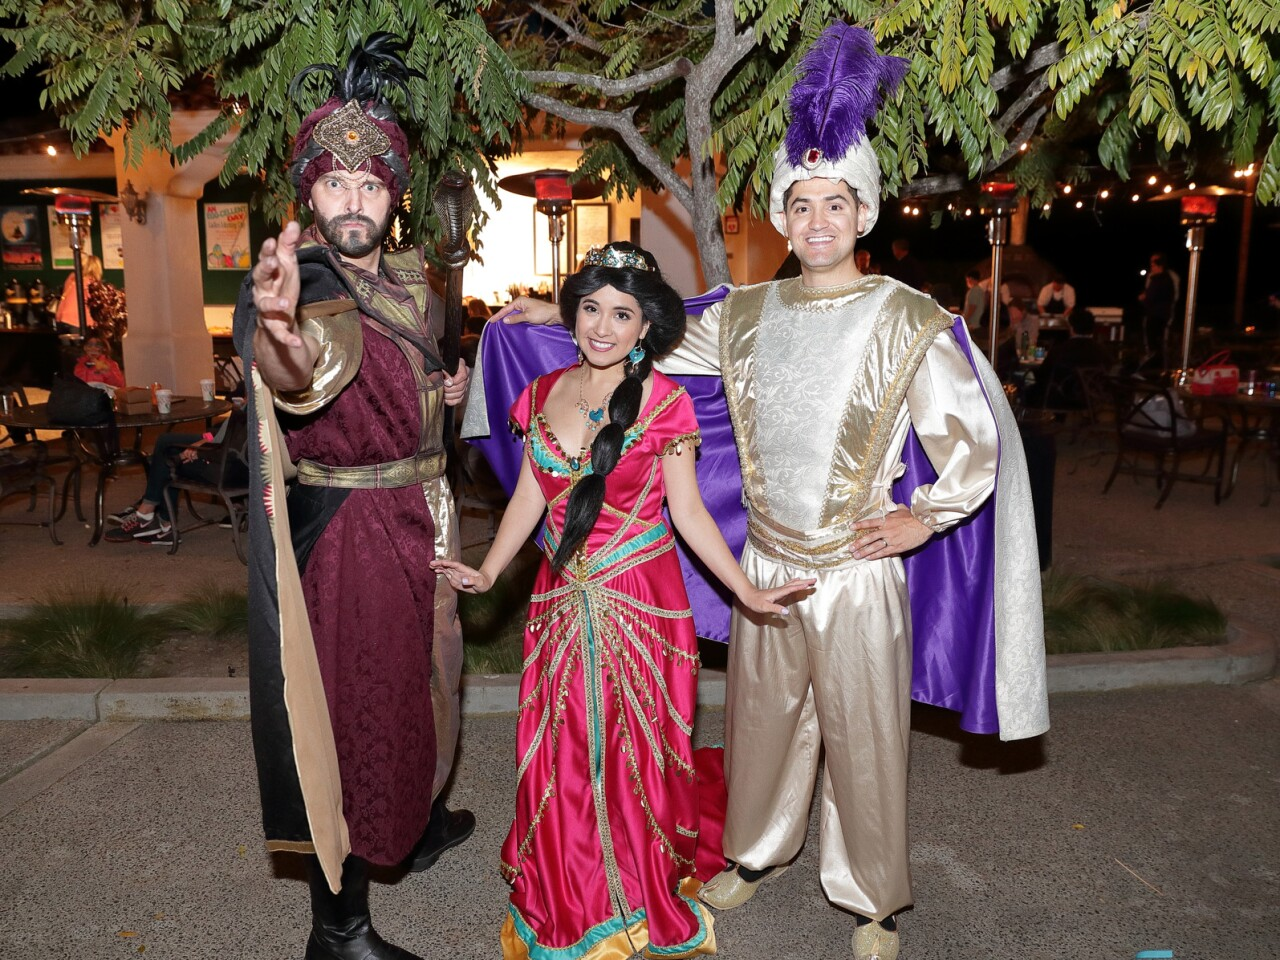 Characters were on hand to pose with the children: Jafar, Jasmine, and Aladdin